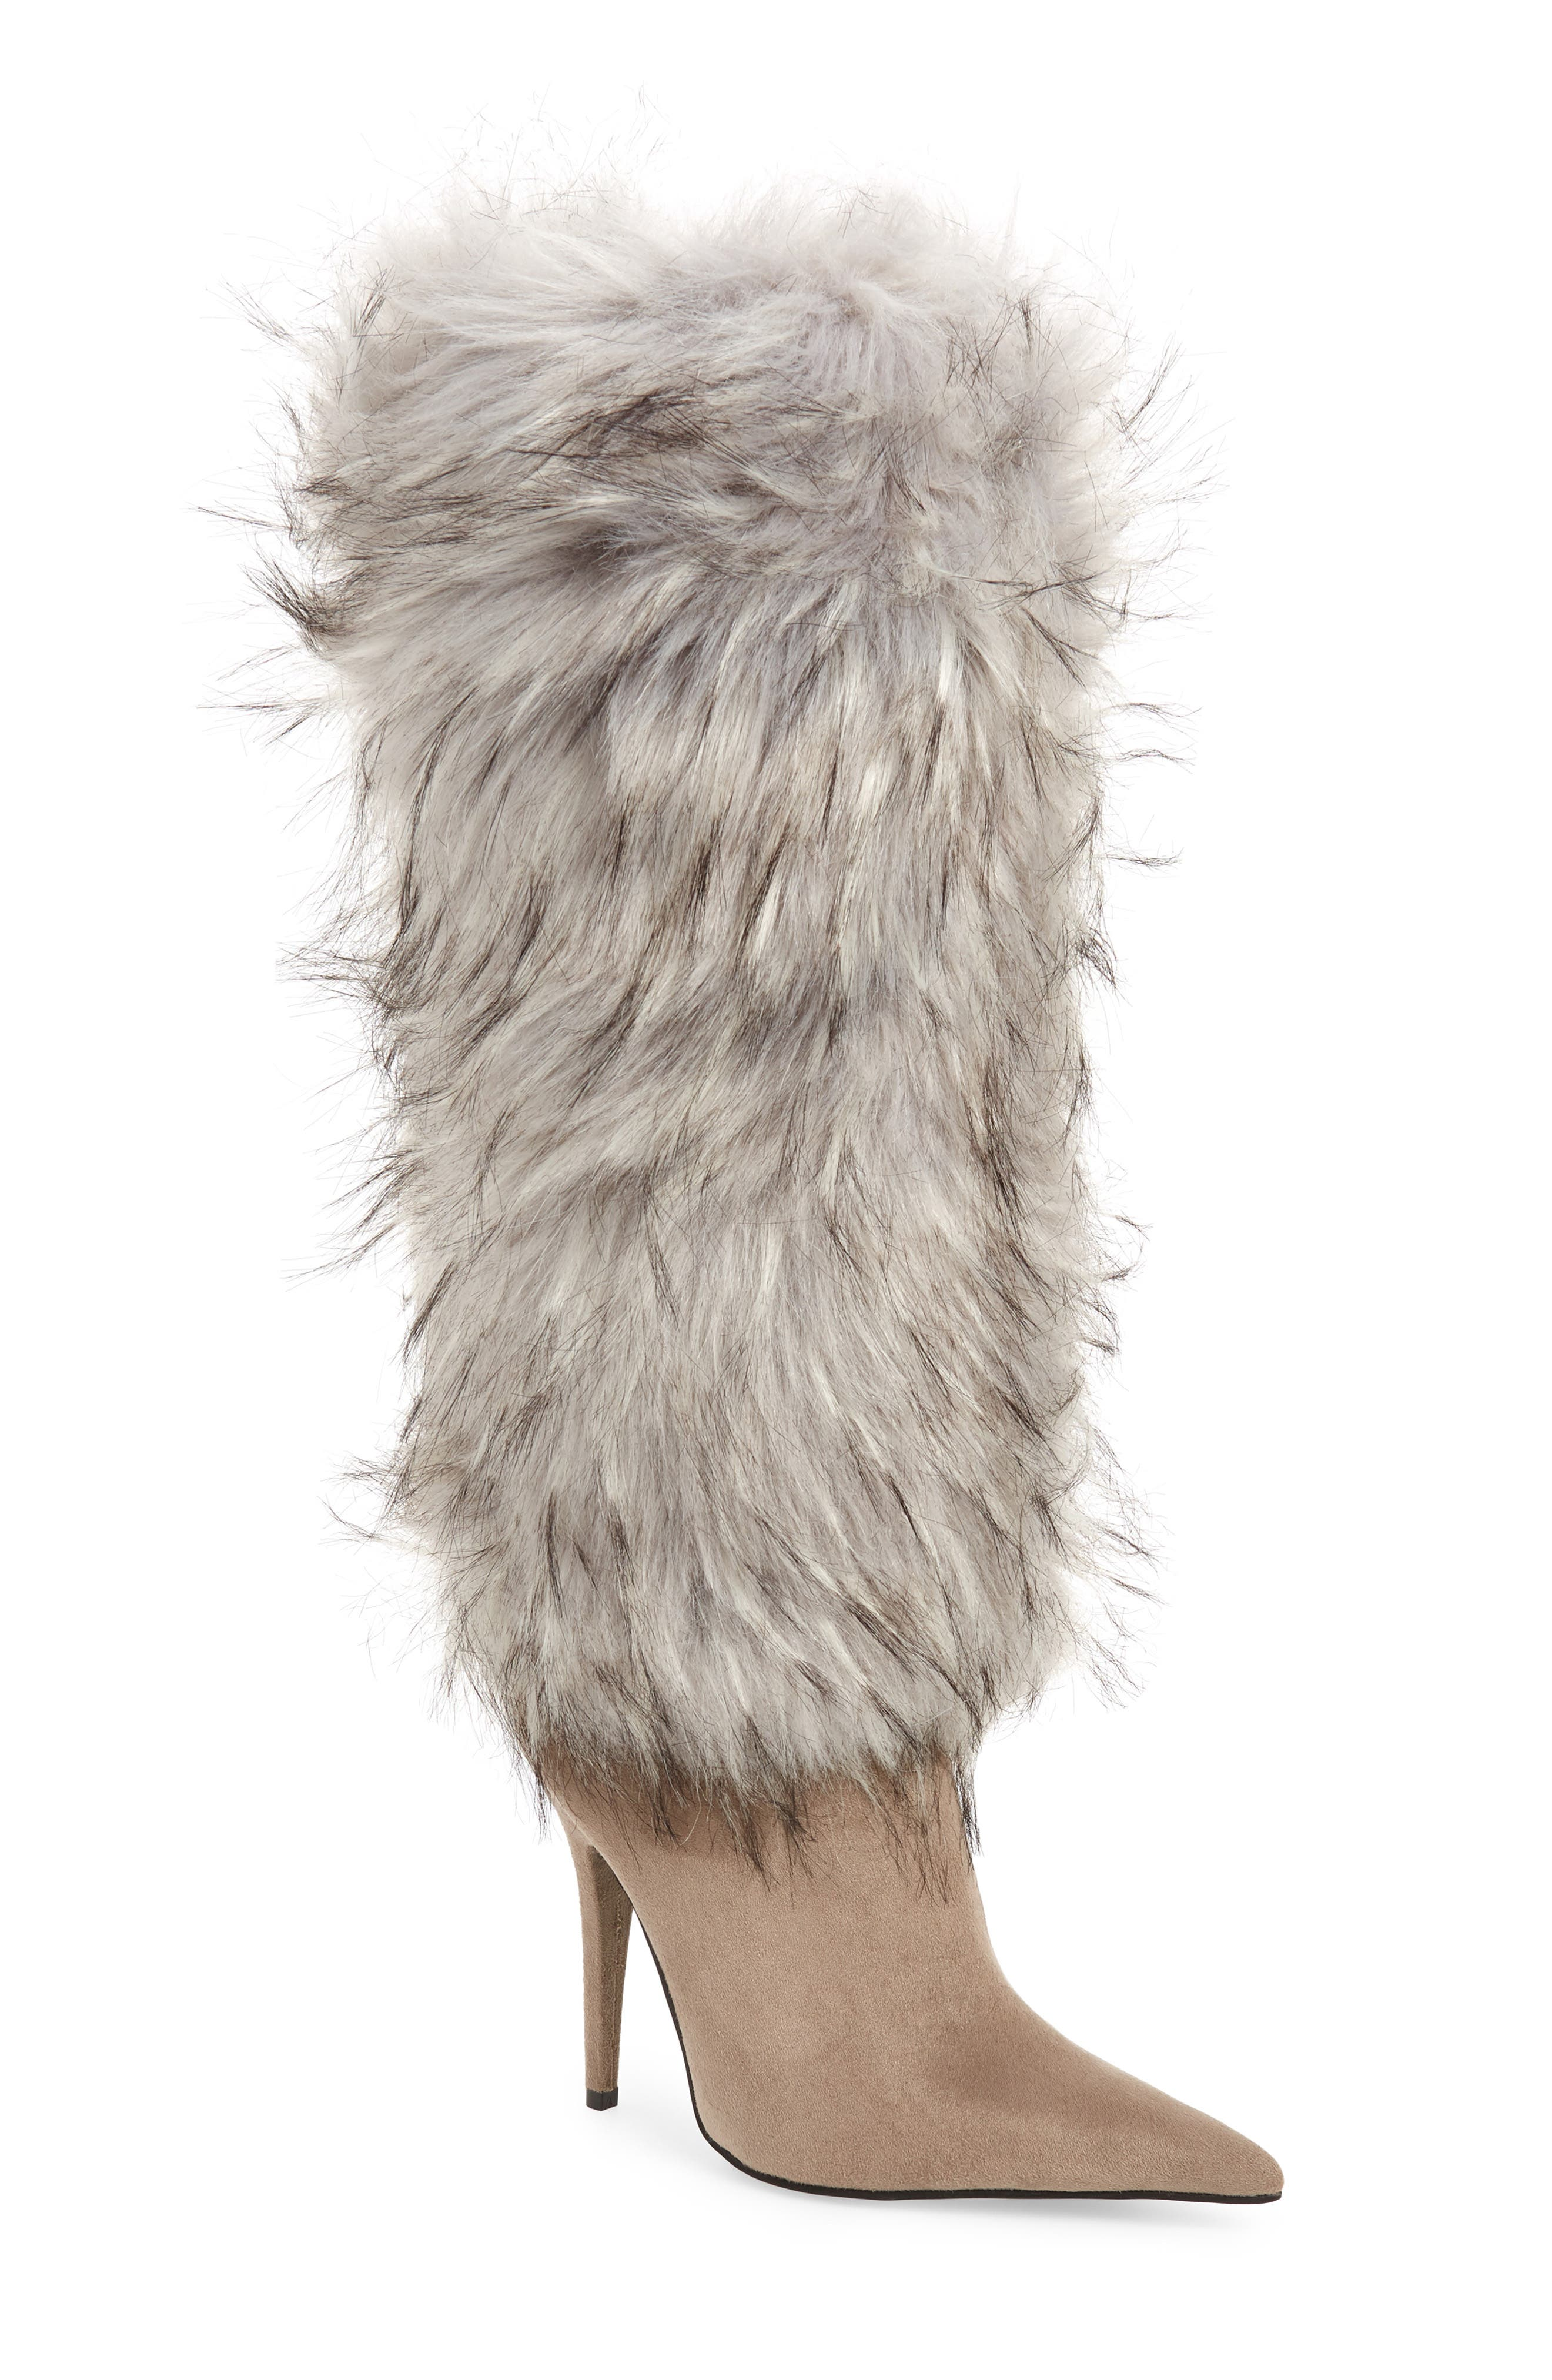 Vedet Faux Fur Knee High Boot,                         Main,                         color, DARK TAUPE SUEDE